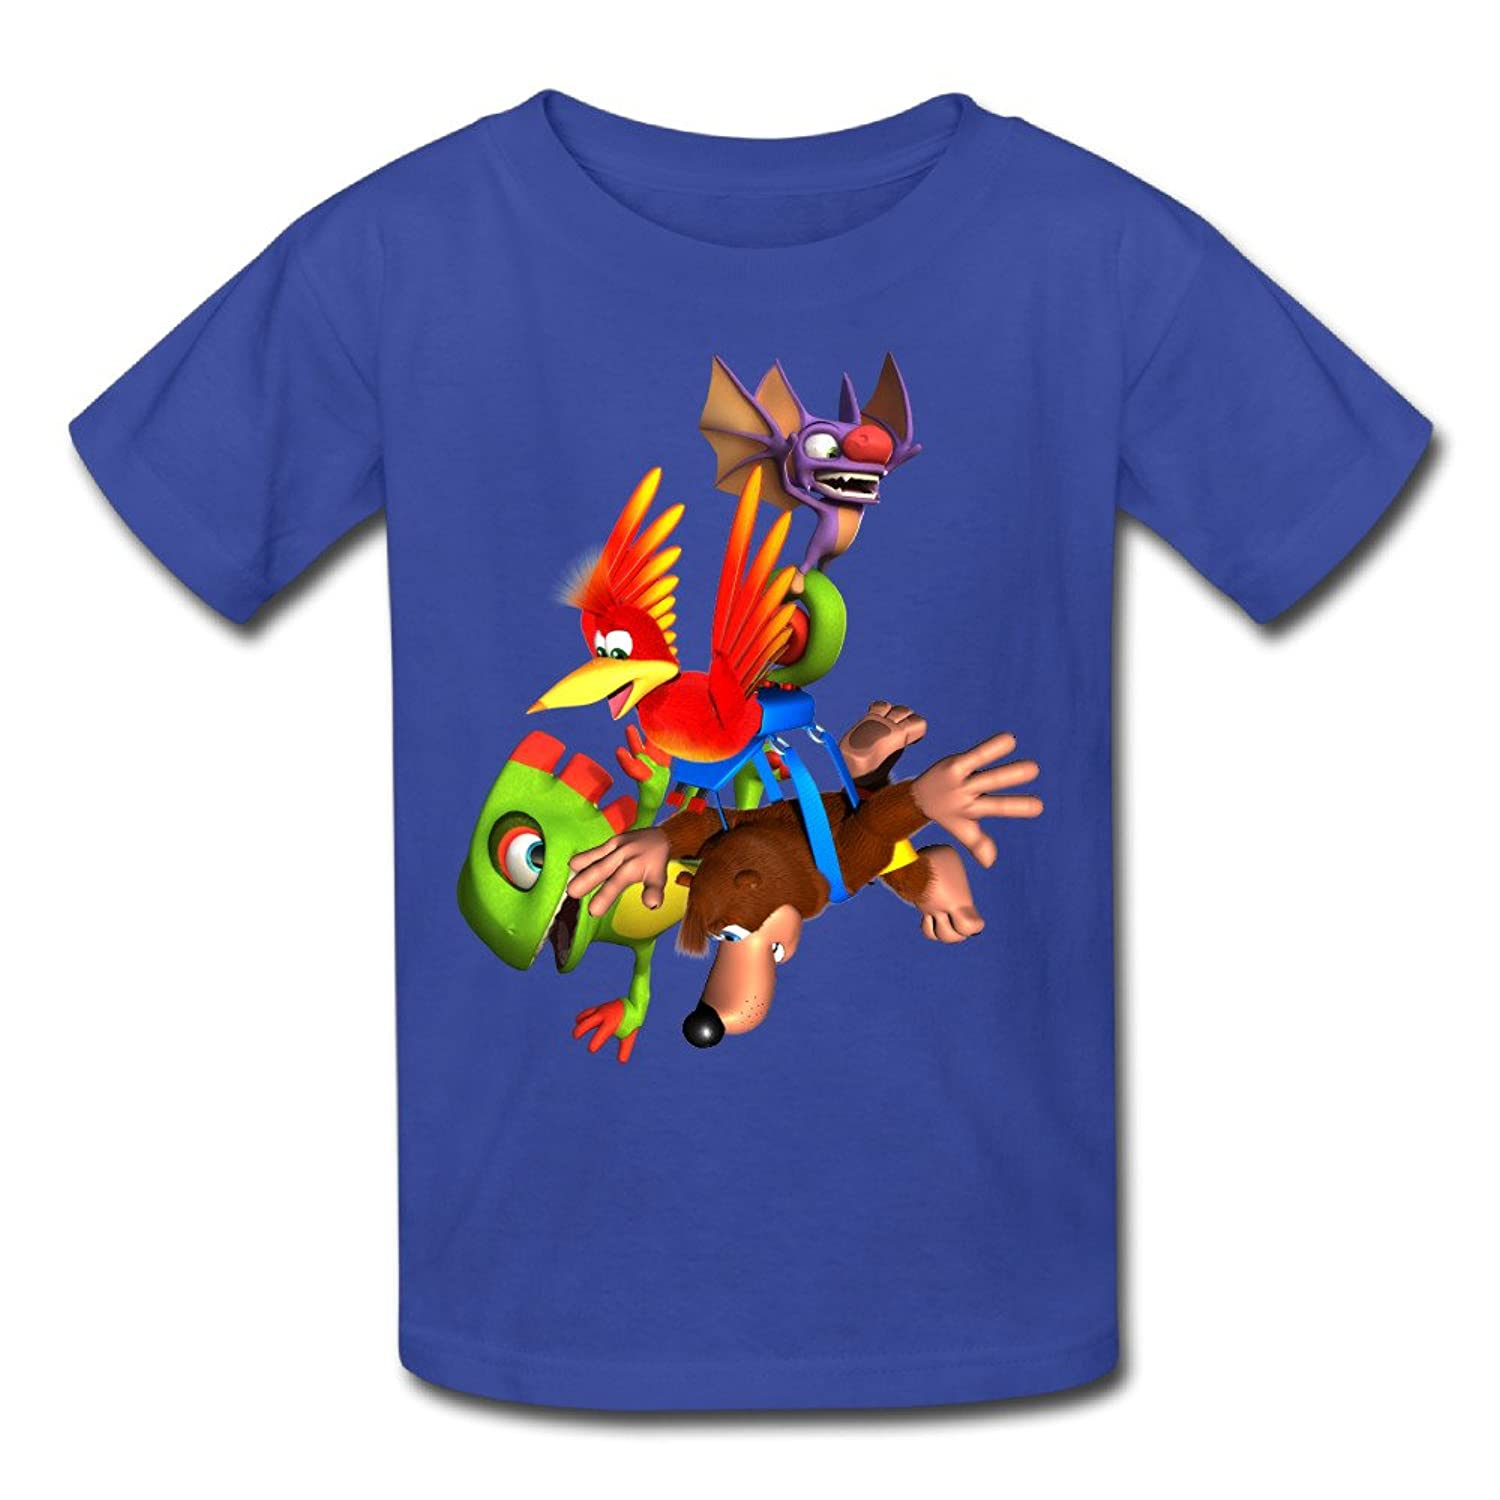 Banjo-Kazooie And Yooka-Laylee Youth Retro Normal Fit Short Sleeve T-Shirt